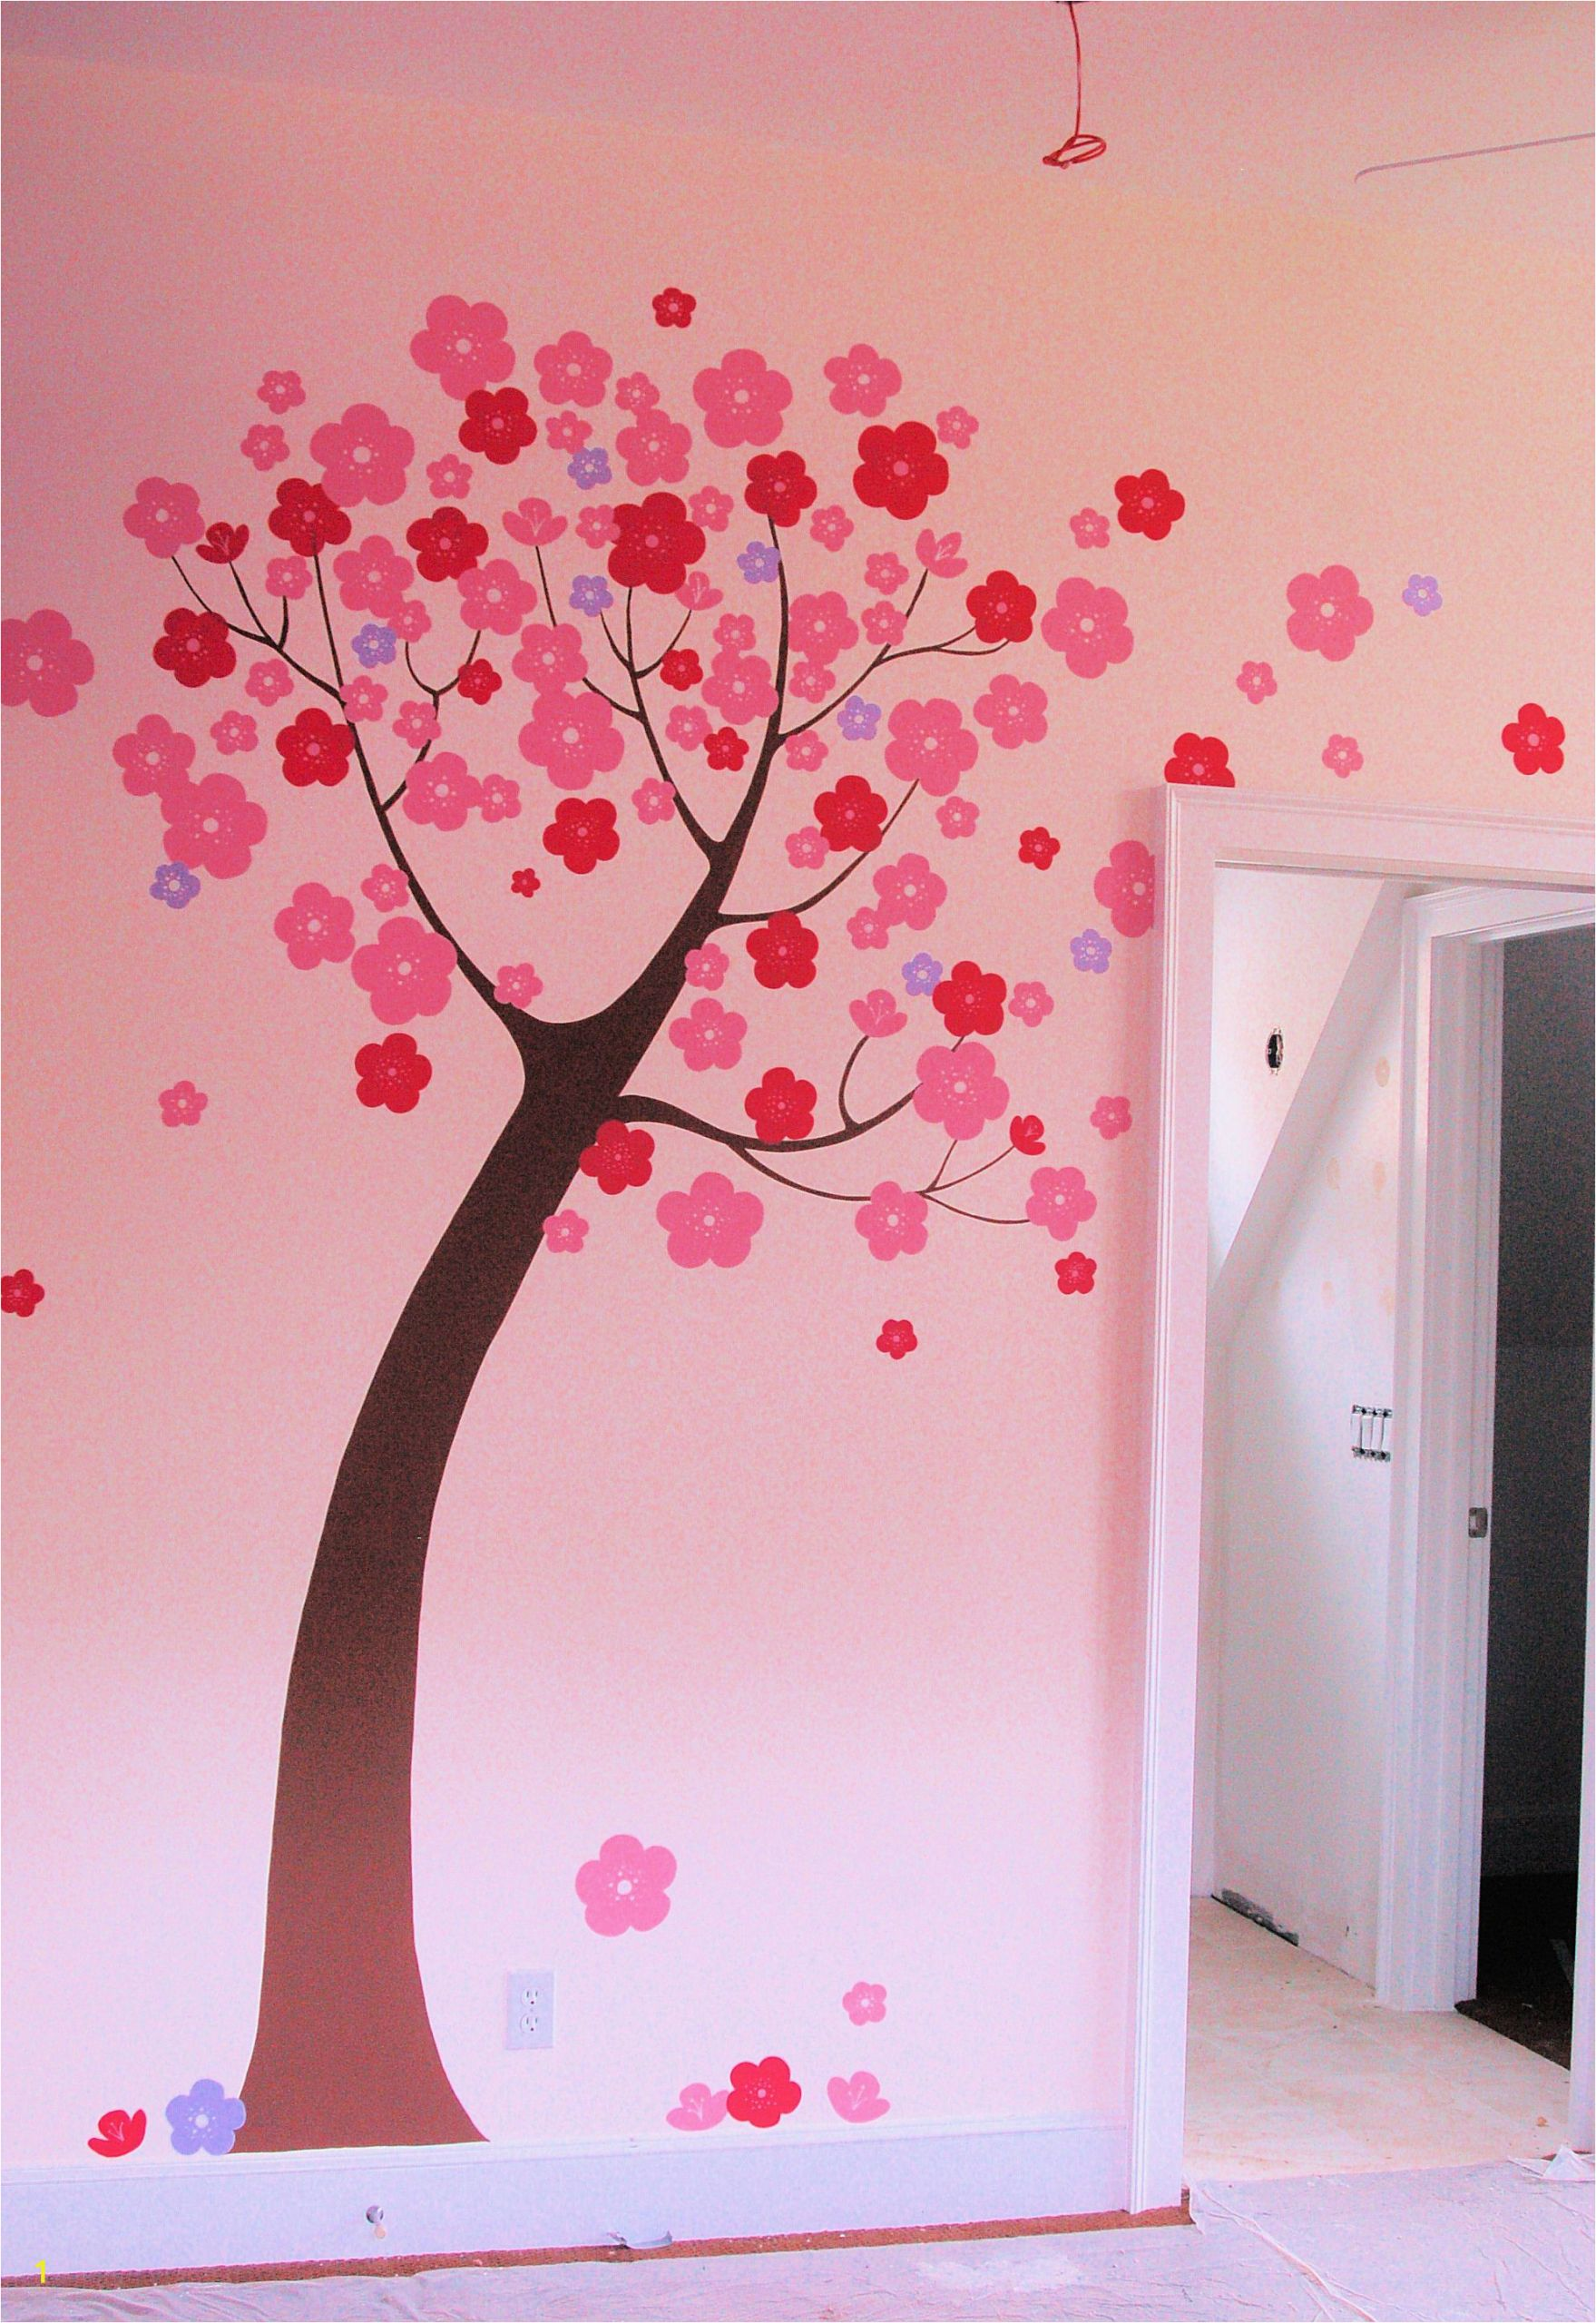 Kids Room Wall Mural Ideas Hand Painted Stylized Tree Mural In Children S Room by Renee